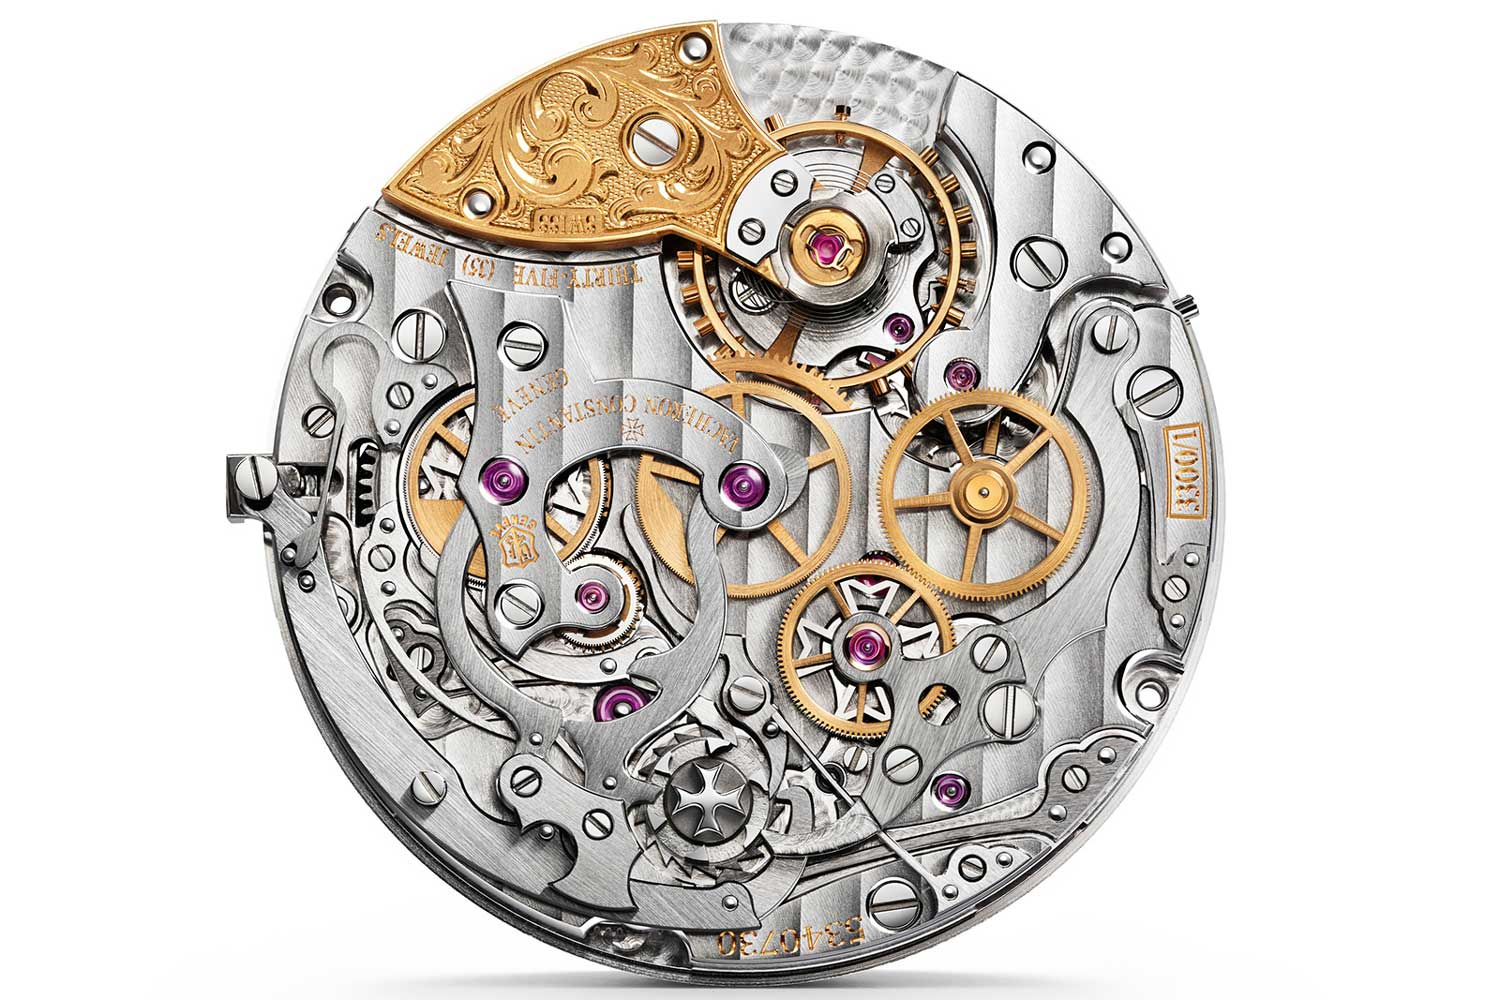 The Vacheron Constantin cal. 3300 with a clutch wheel that is made up of two stacked wheels that are driven by friction